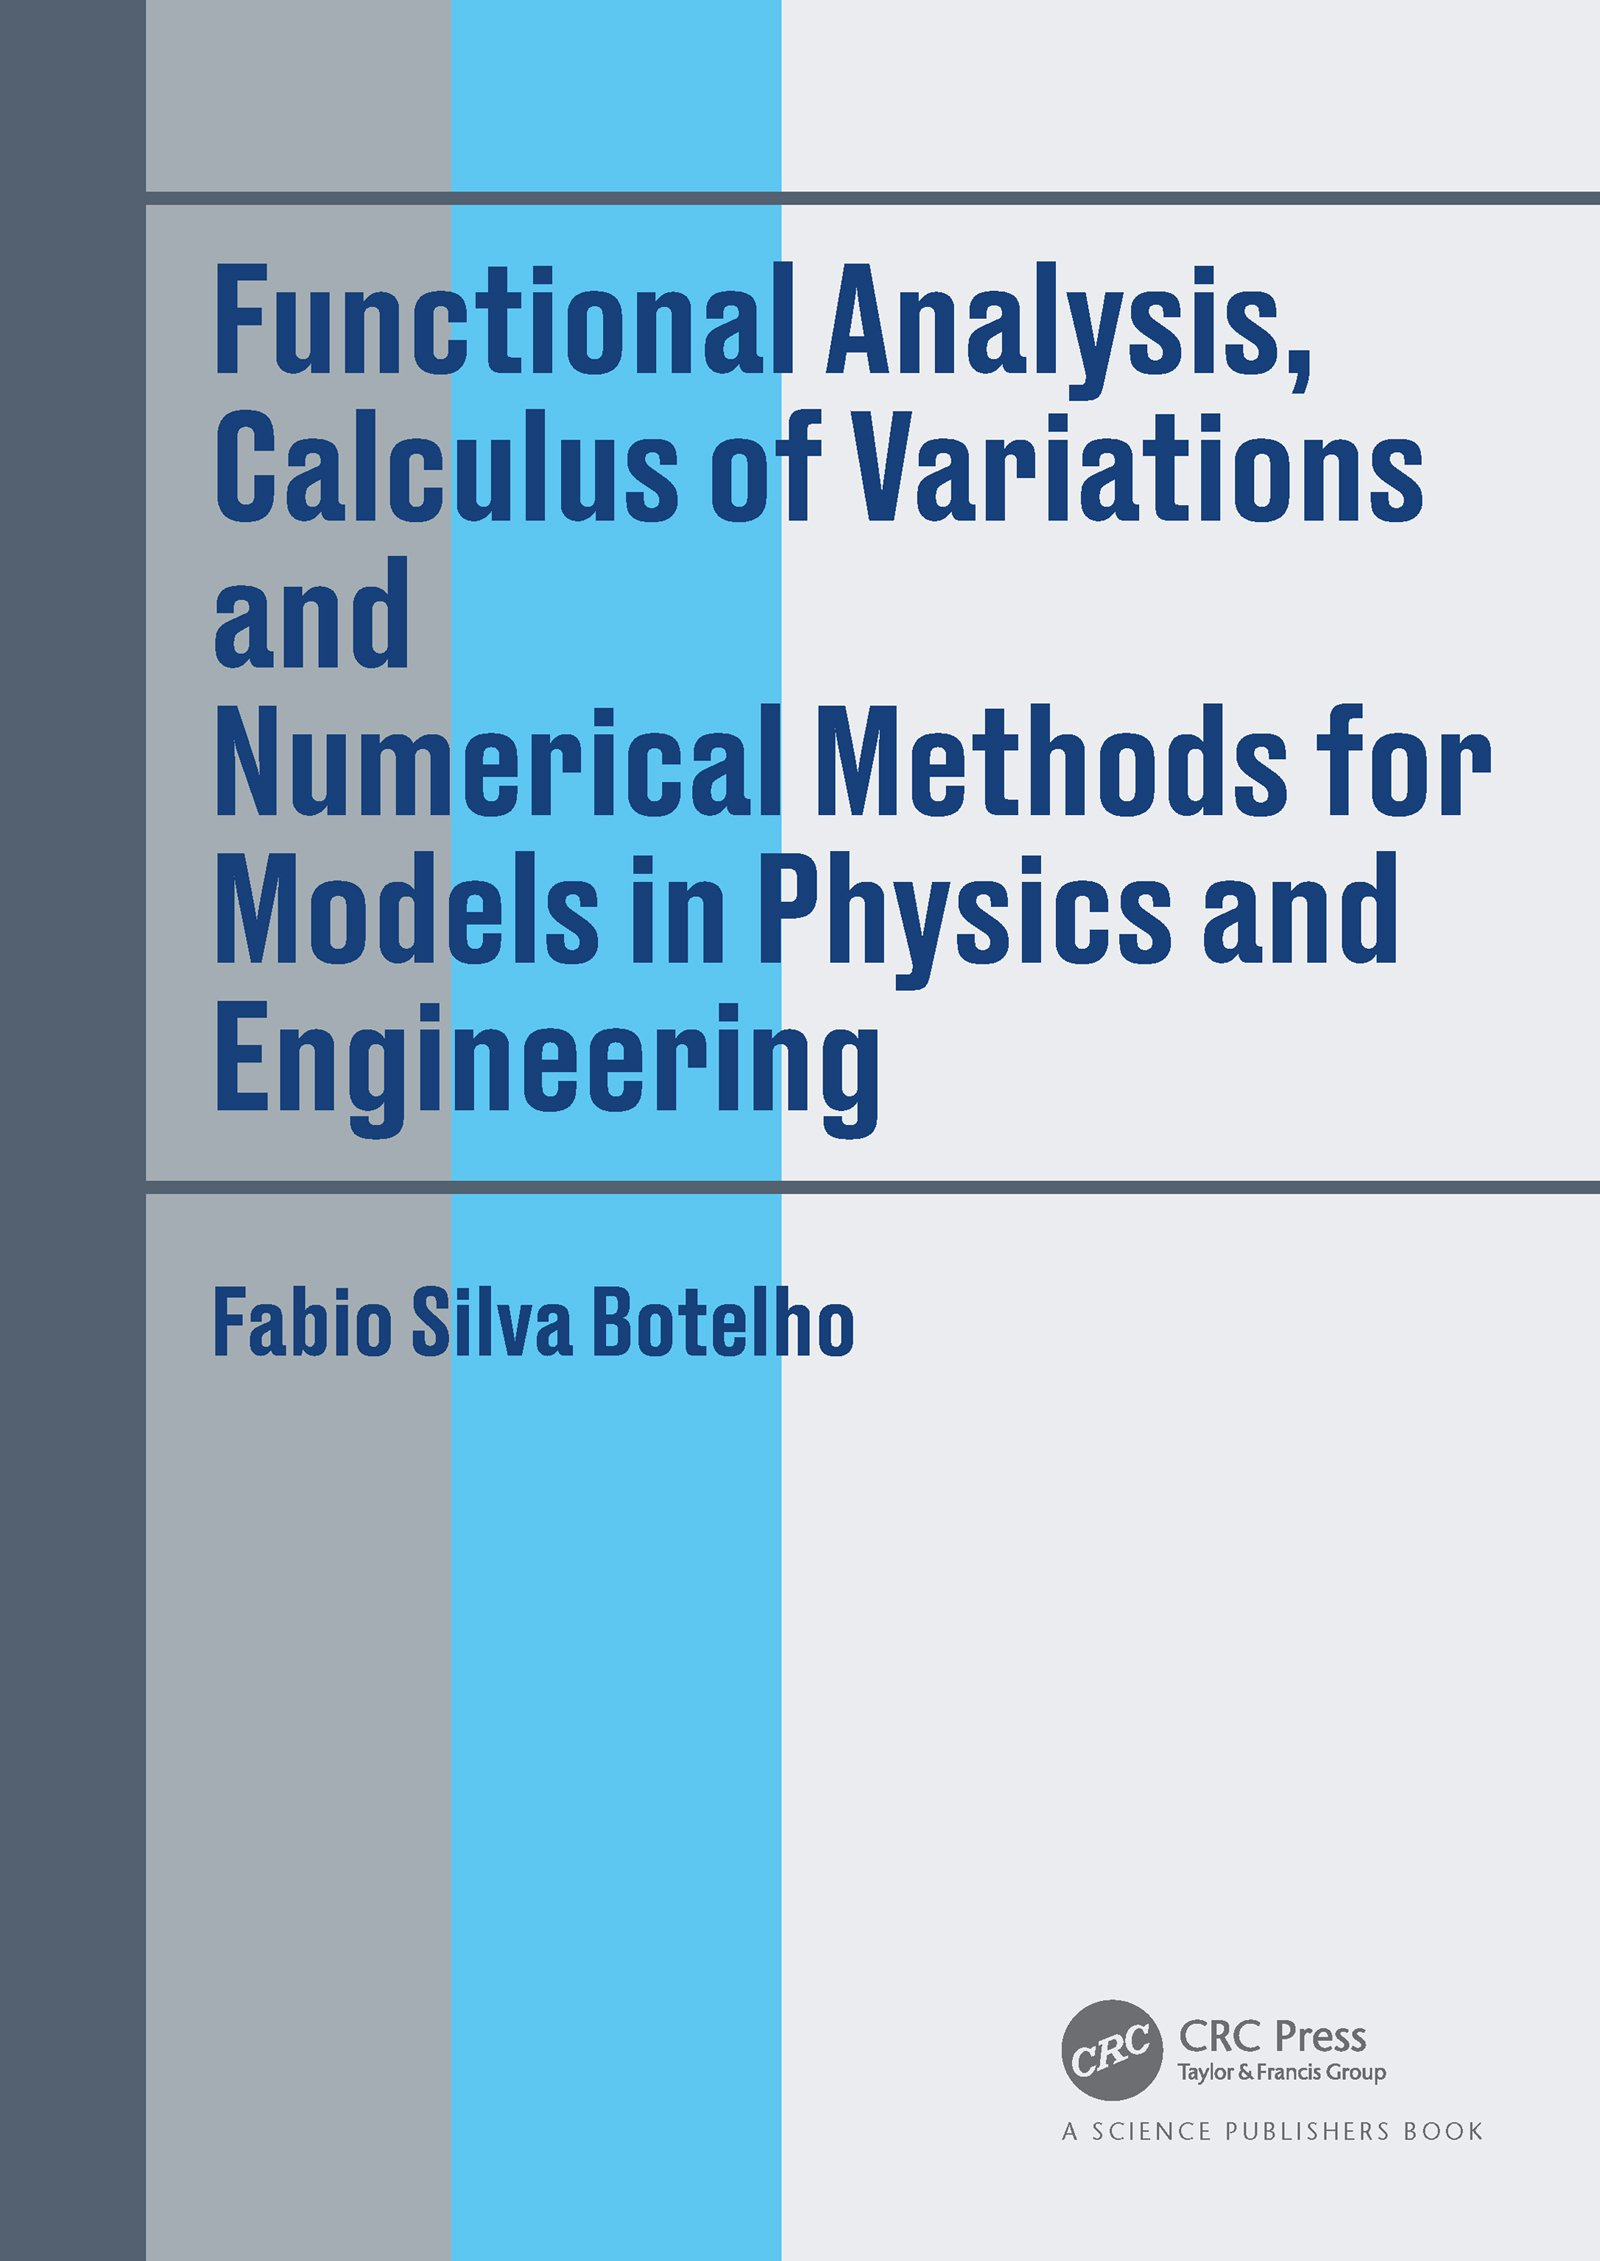 On Central Fields in                         the Calculus of Variations